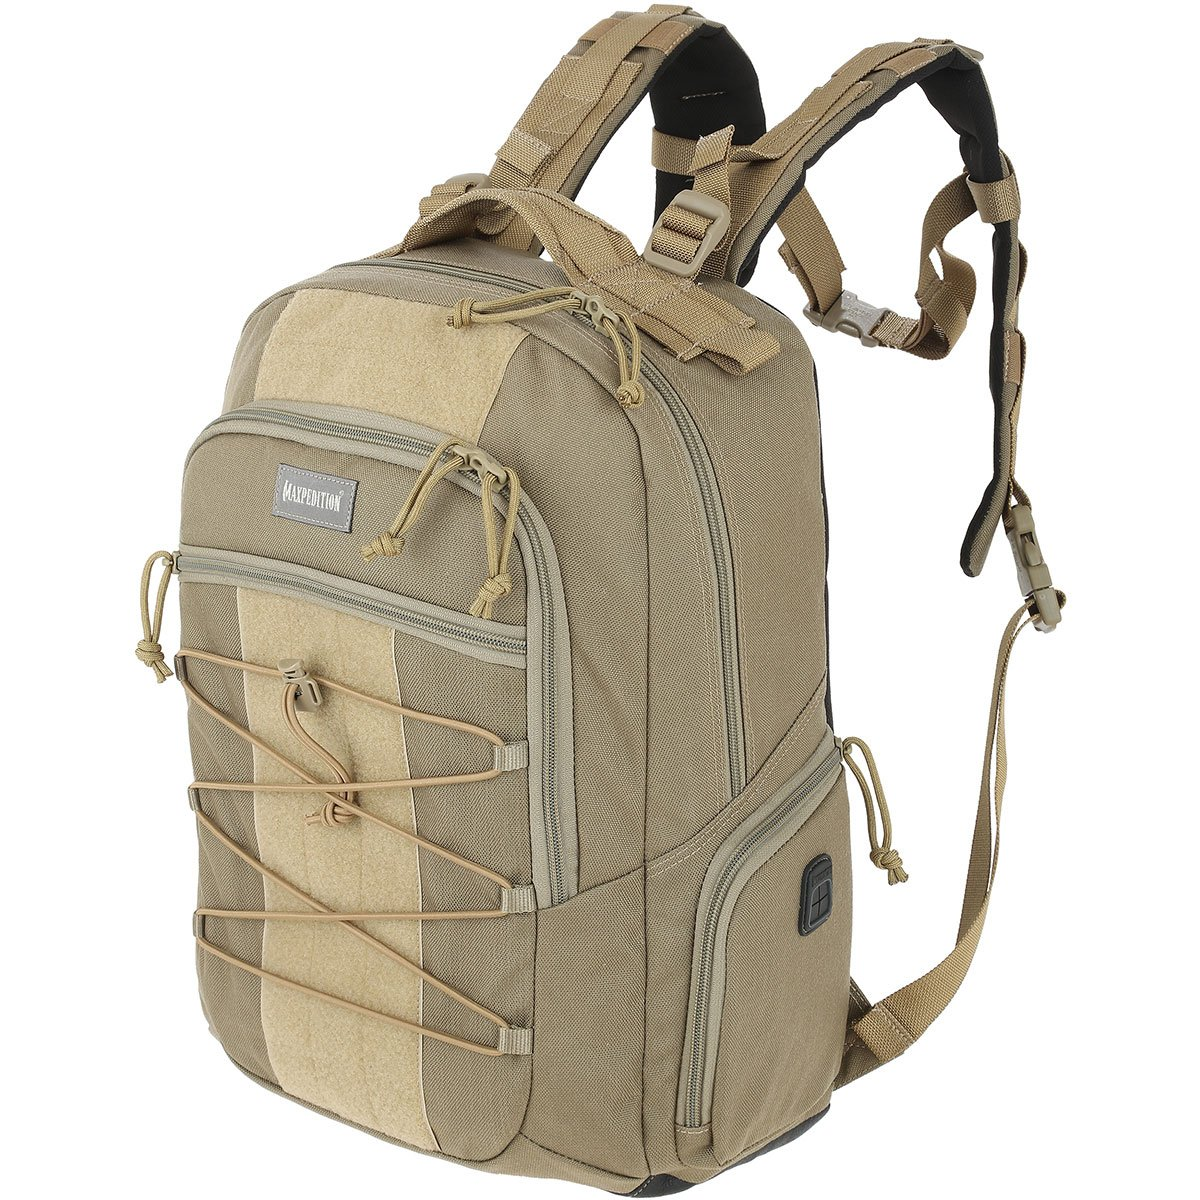 Maxpedition Incognito Laptop Backpack, Khaki